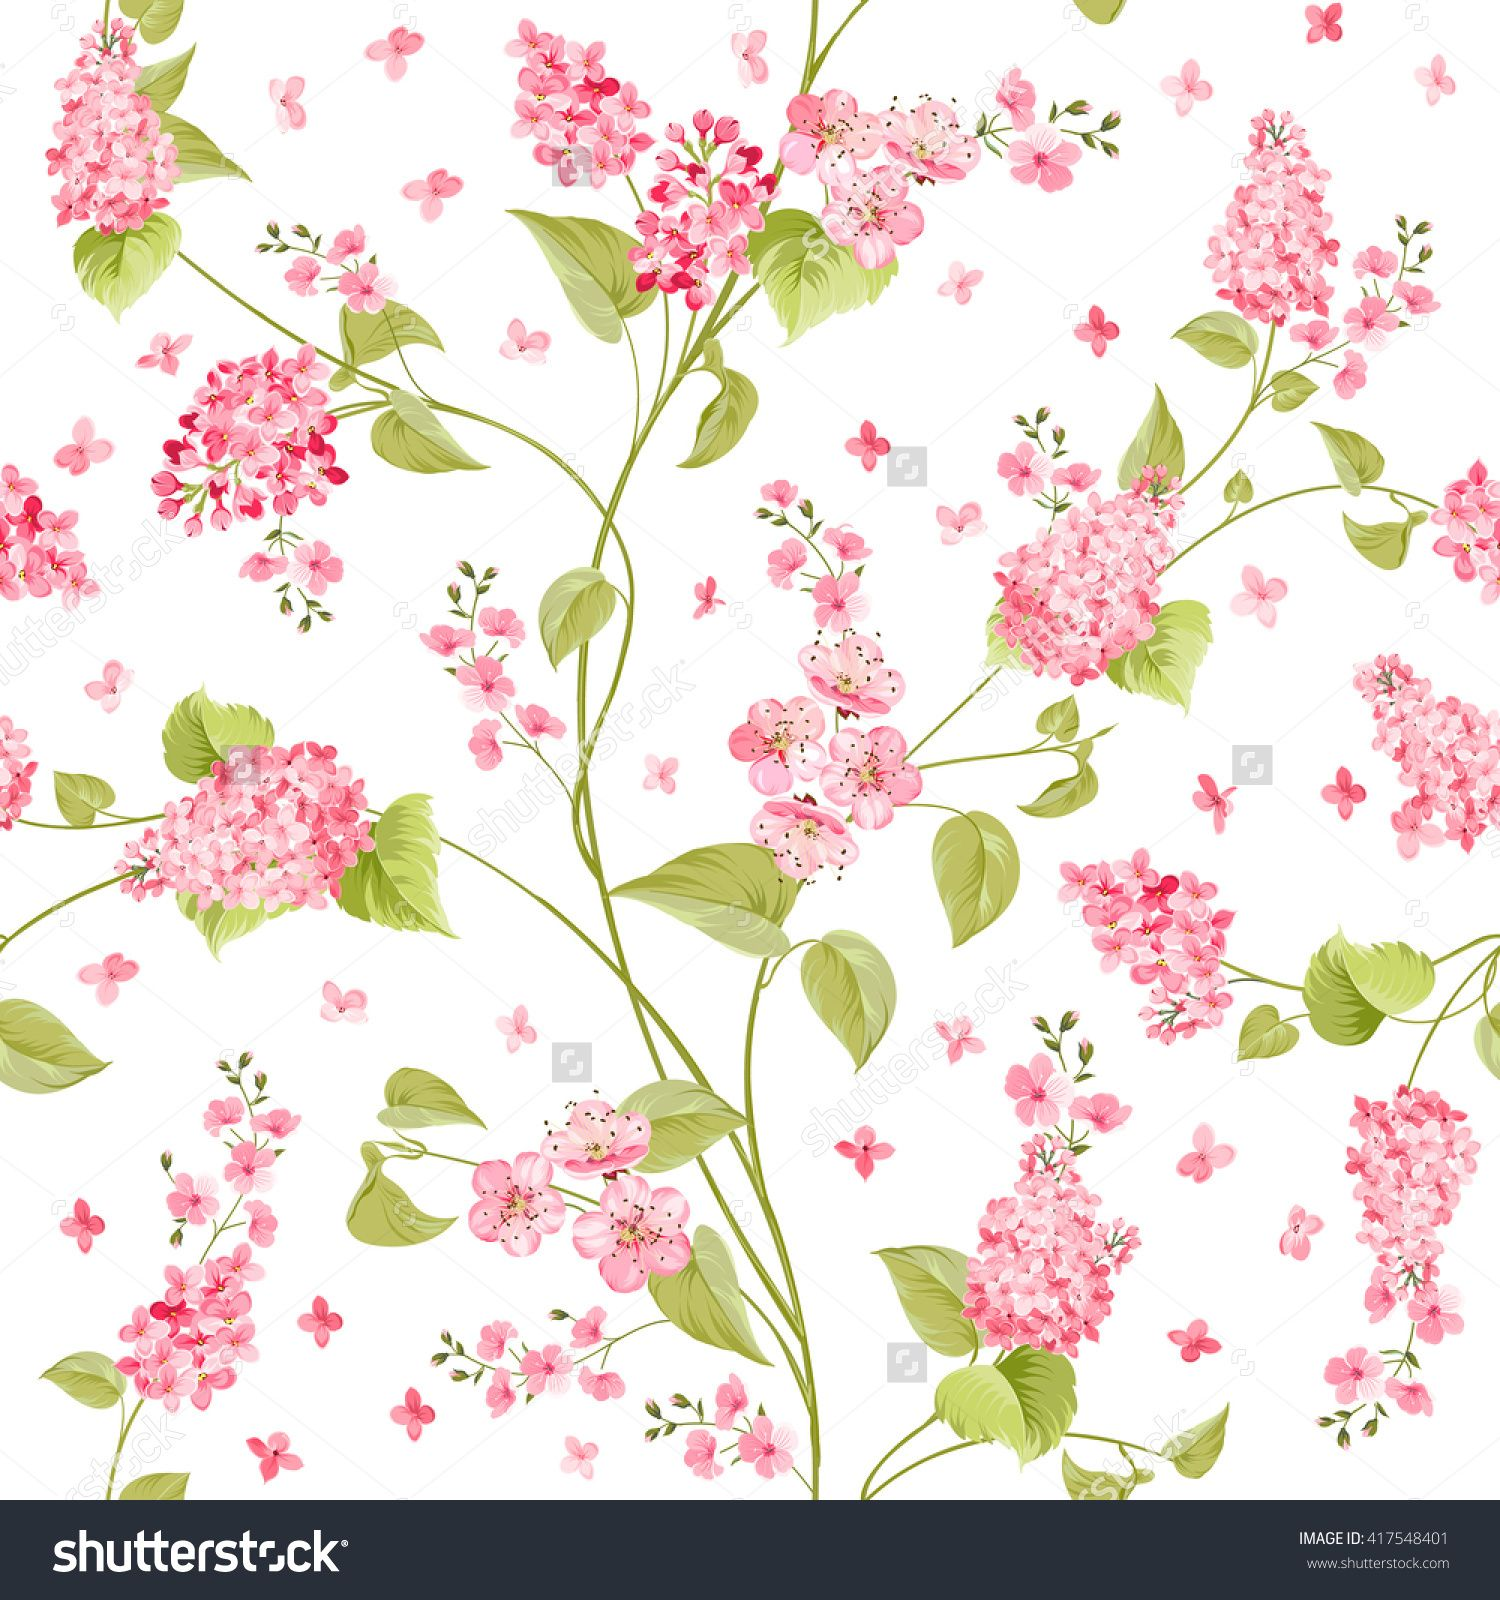 Fabric Texture Pattern With Seamless Flowers The Floral Over Light Background Flower Of Purple Hydrangea White